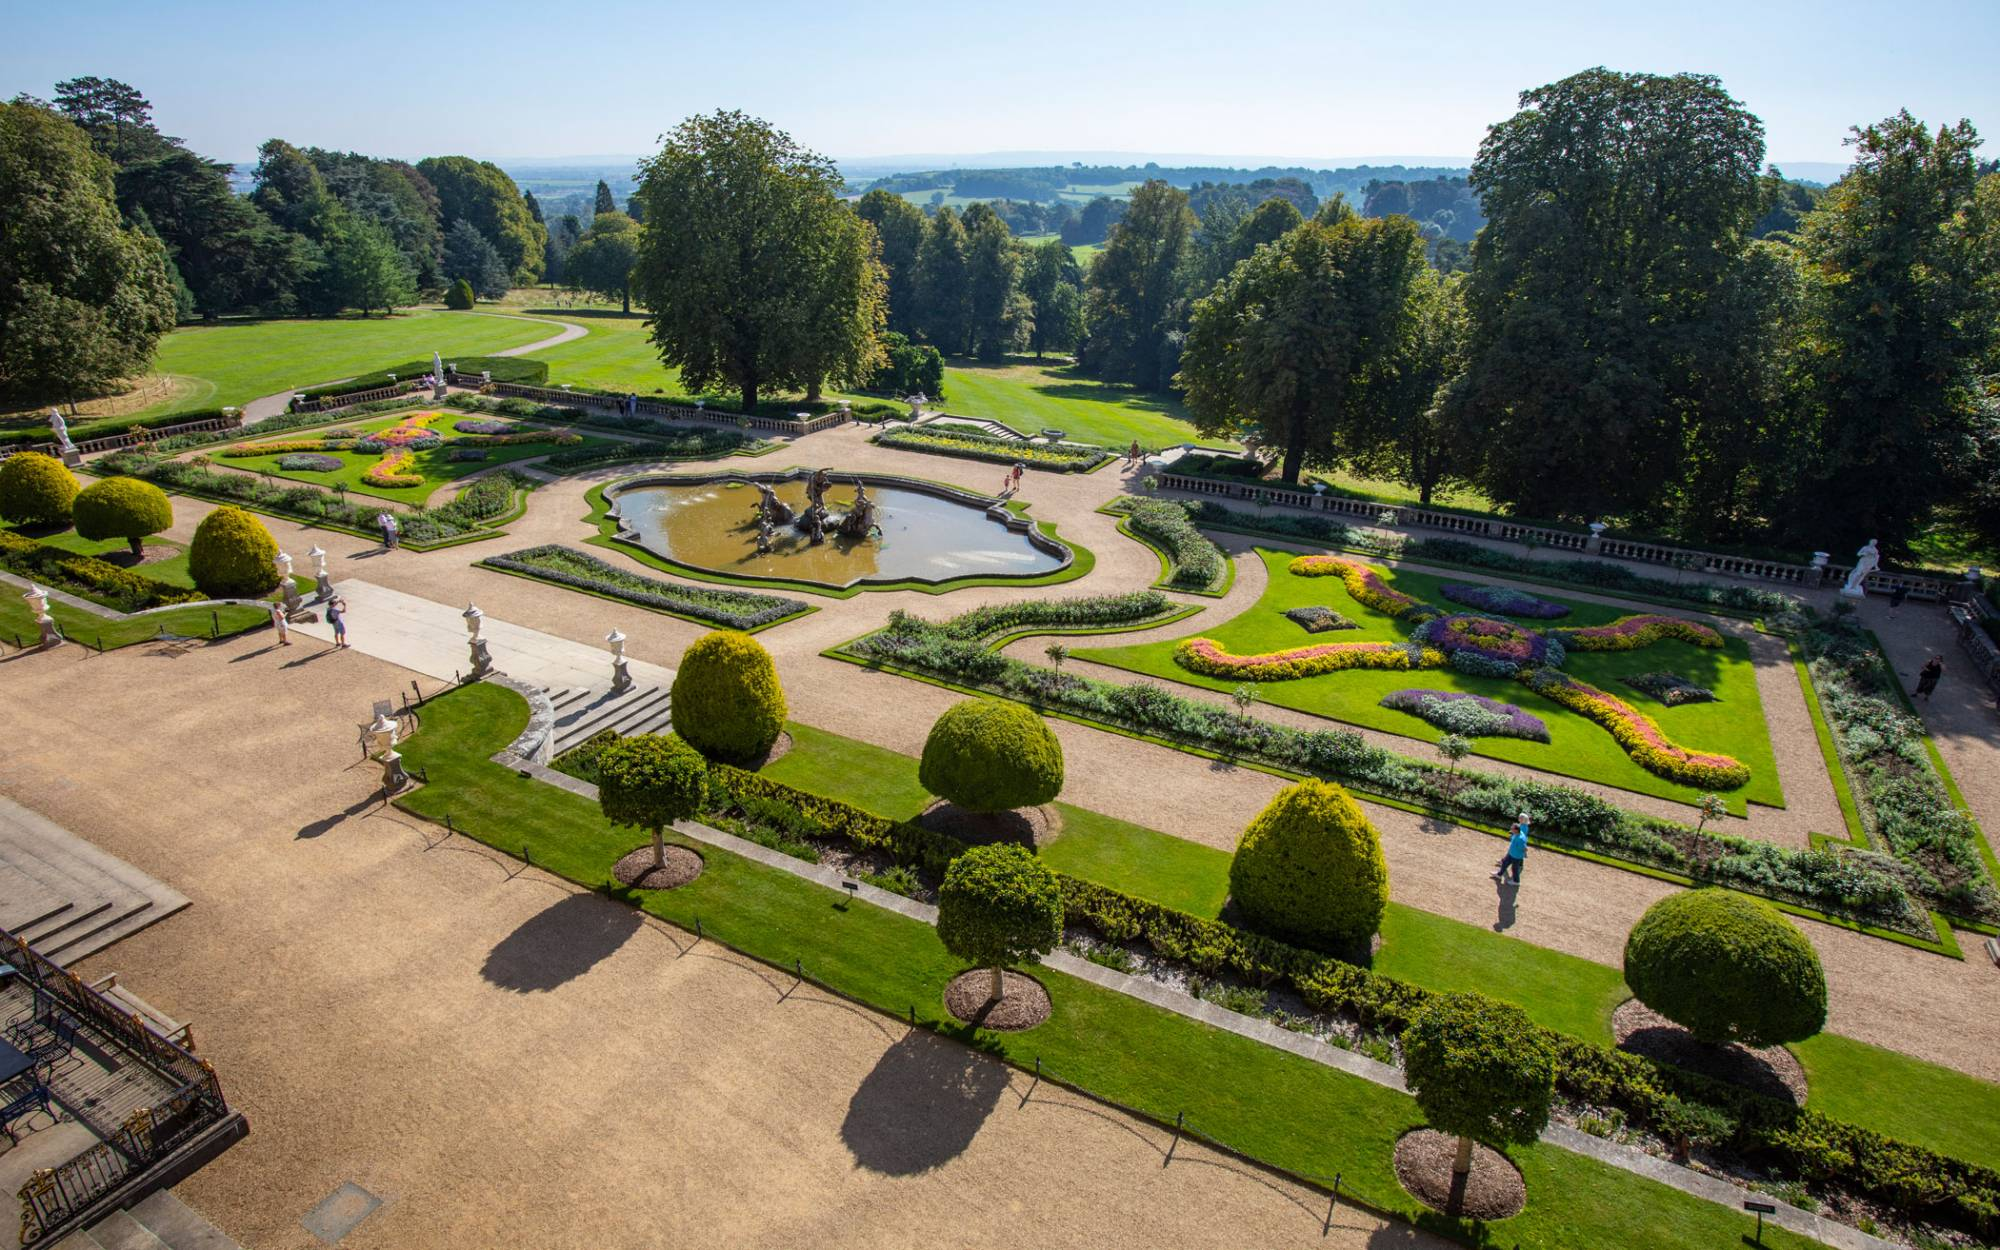 View of Parterre from above